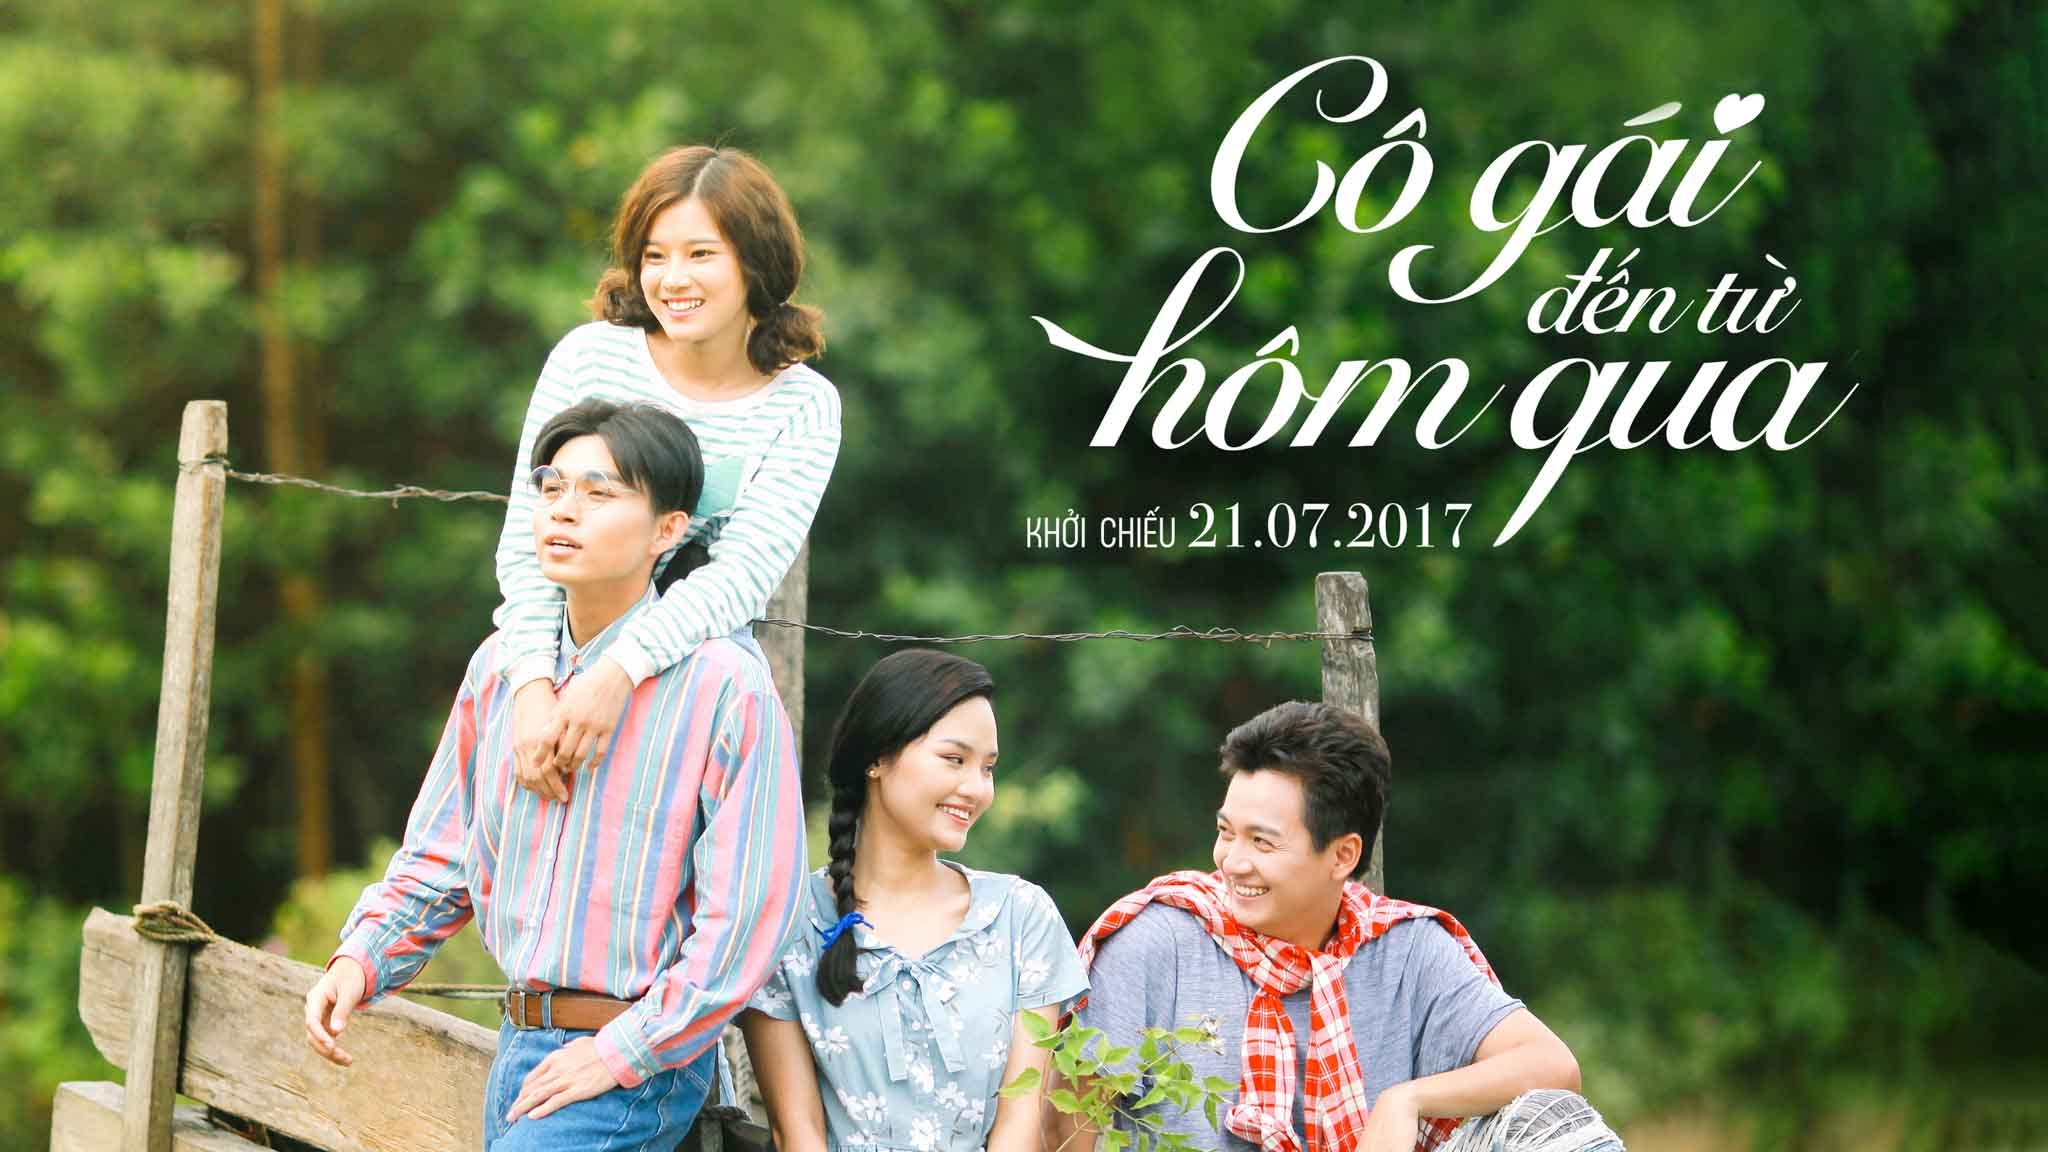 Movie 'Girl From Yesterday' scores success, entertainment events, entertainment news, entertainment activities, what's on, Vietnam culture, Vietnam tradition, vn news, Vietnam beauty, news Vietnam, Vietnam news, Vietnam net news, vietnamnet news, vietnamn